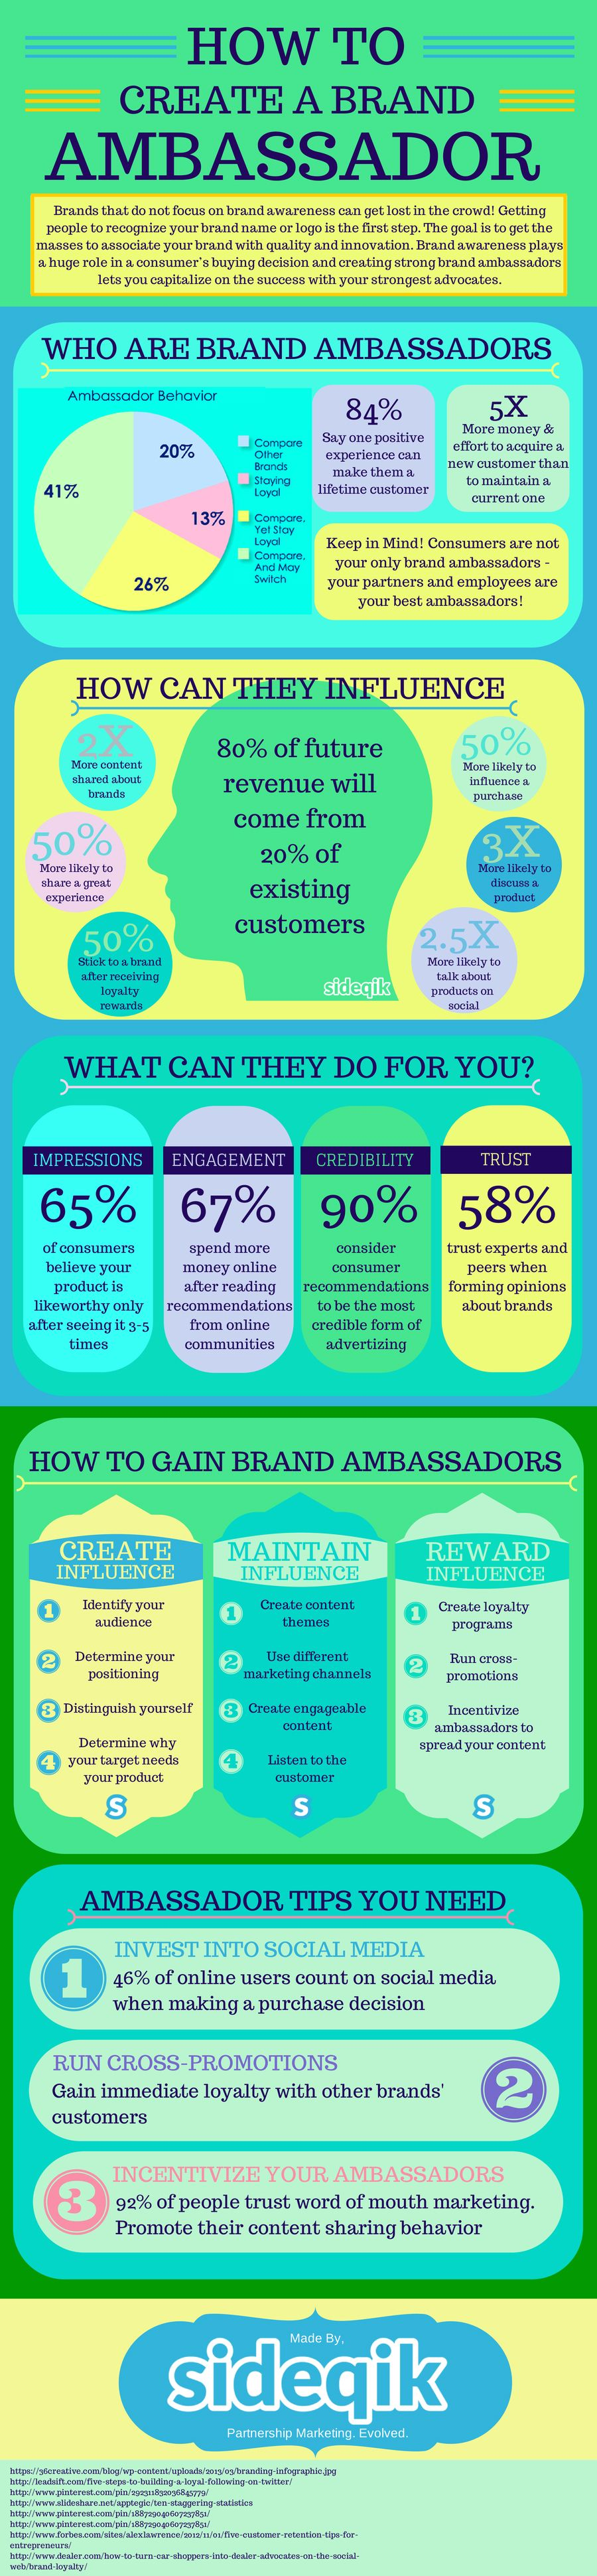 (Infographic) How To Create A Brand Ambassador | Read more Digital Marketing and E-commerce tips